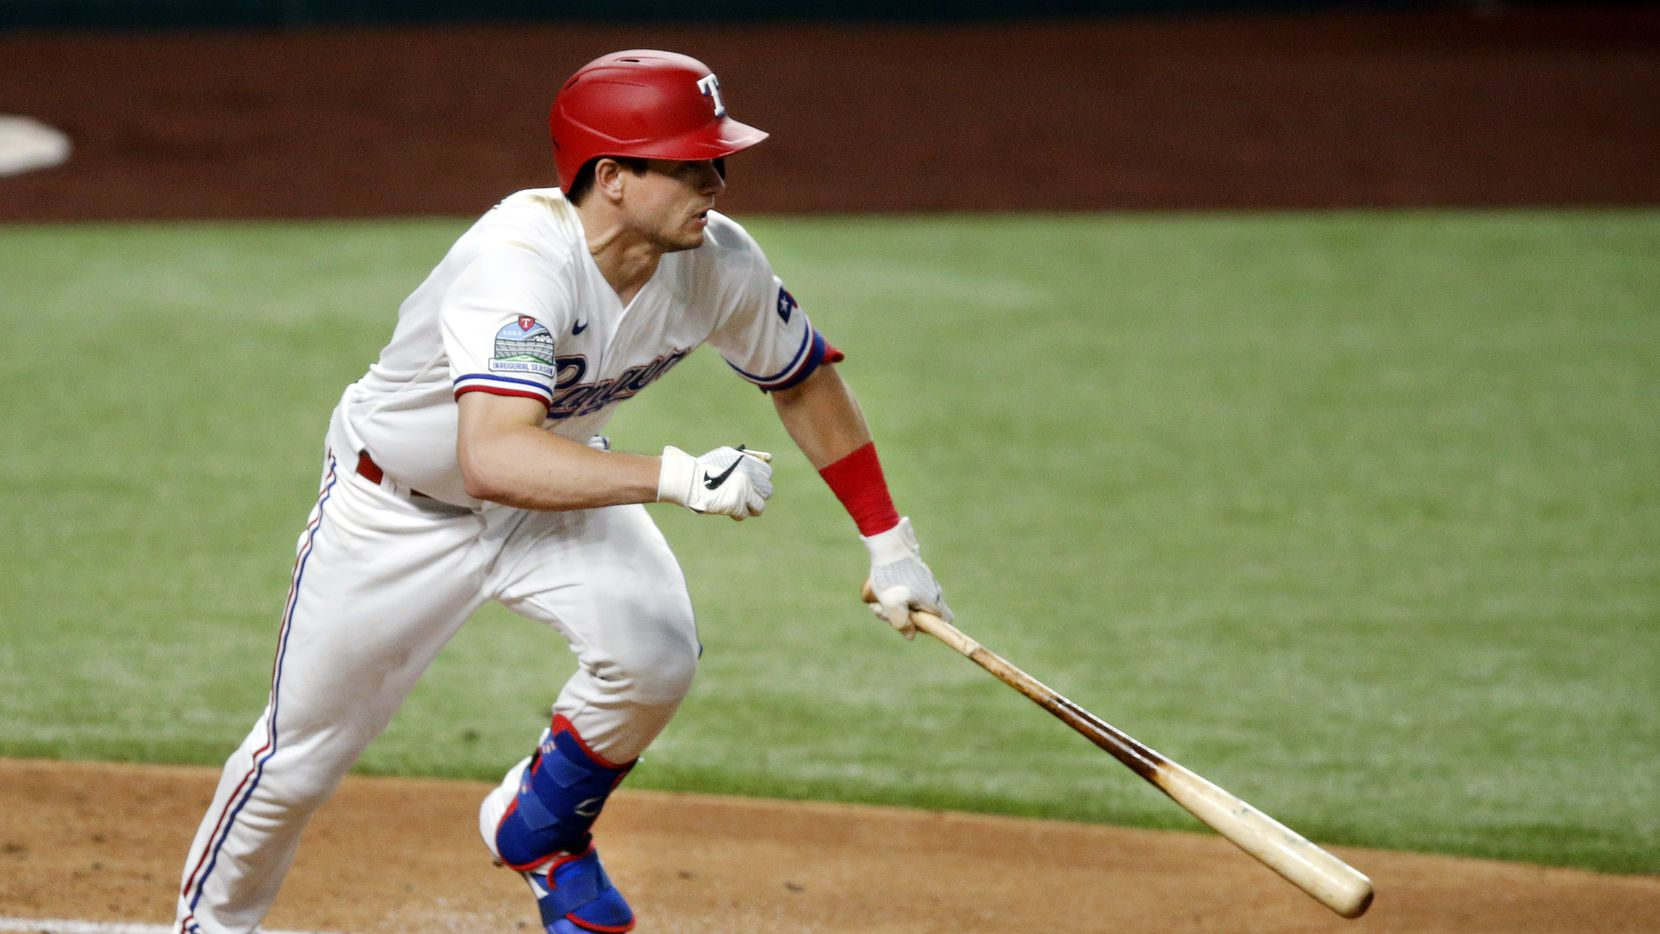 Texas Rangers batter Nick Solak hits a two RBI single in the first inning against the Seattle Mariners at Globe Life Field in Arlington, Tuesday, August 11, 2020. He scored Todd Frazier and Isiah Kiner-Falefa.